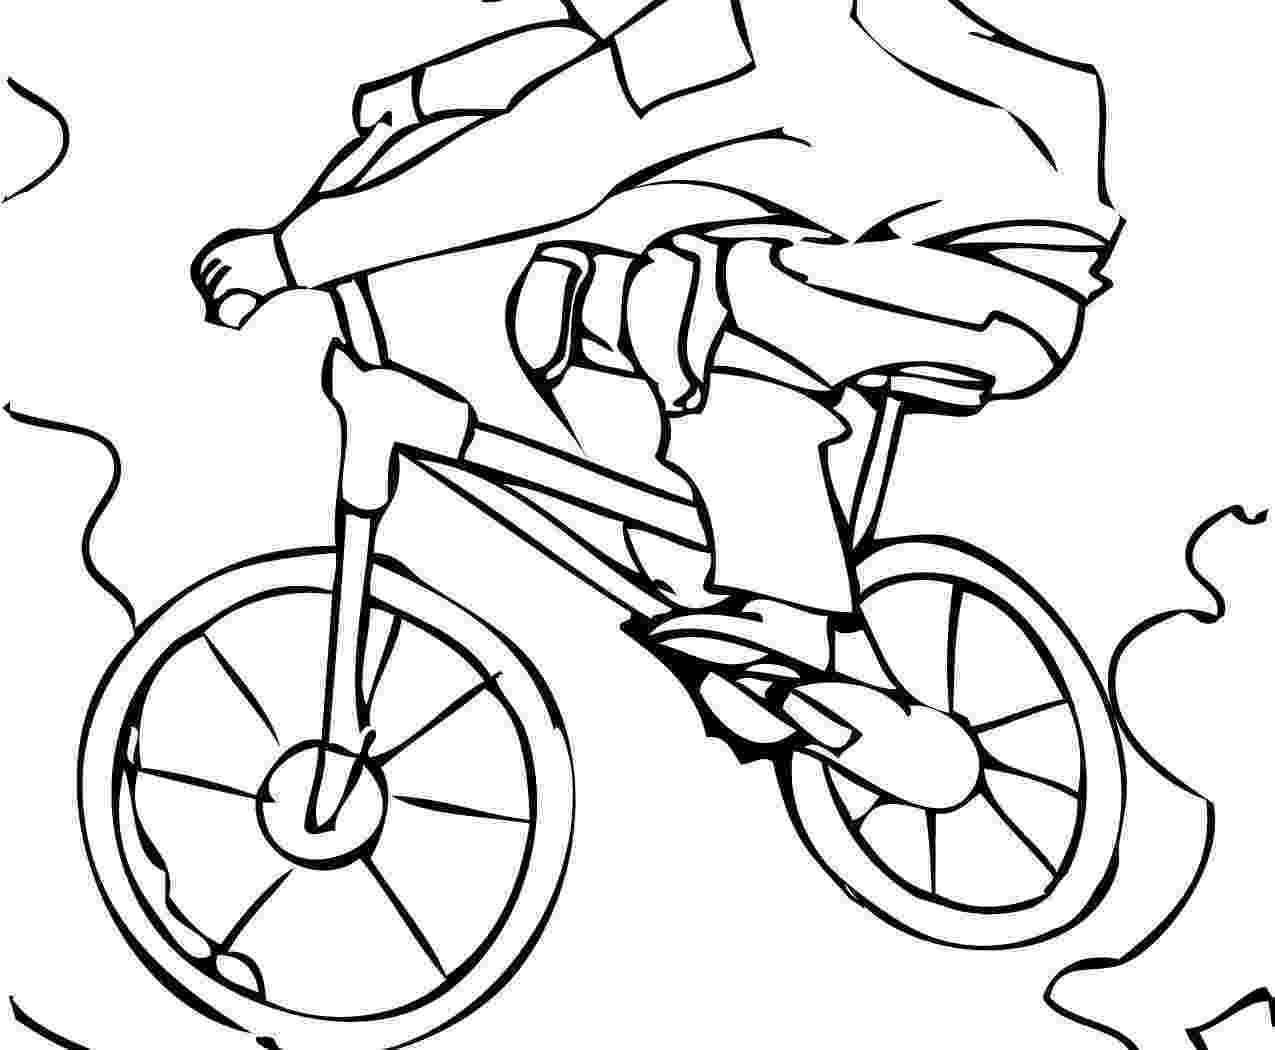 bmx bike coloring pages bmx racing coloring page screenfonds bmx bike pages coloring